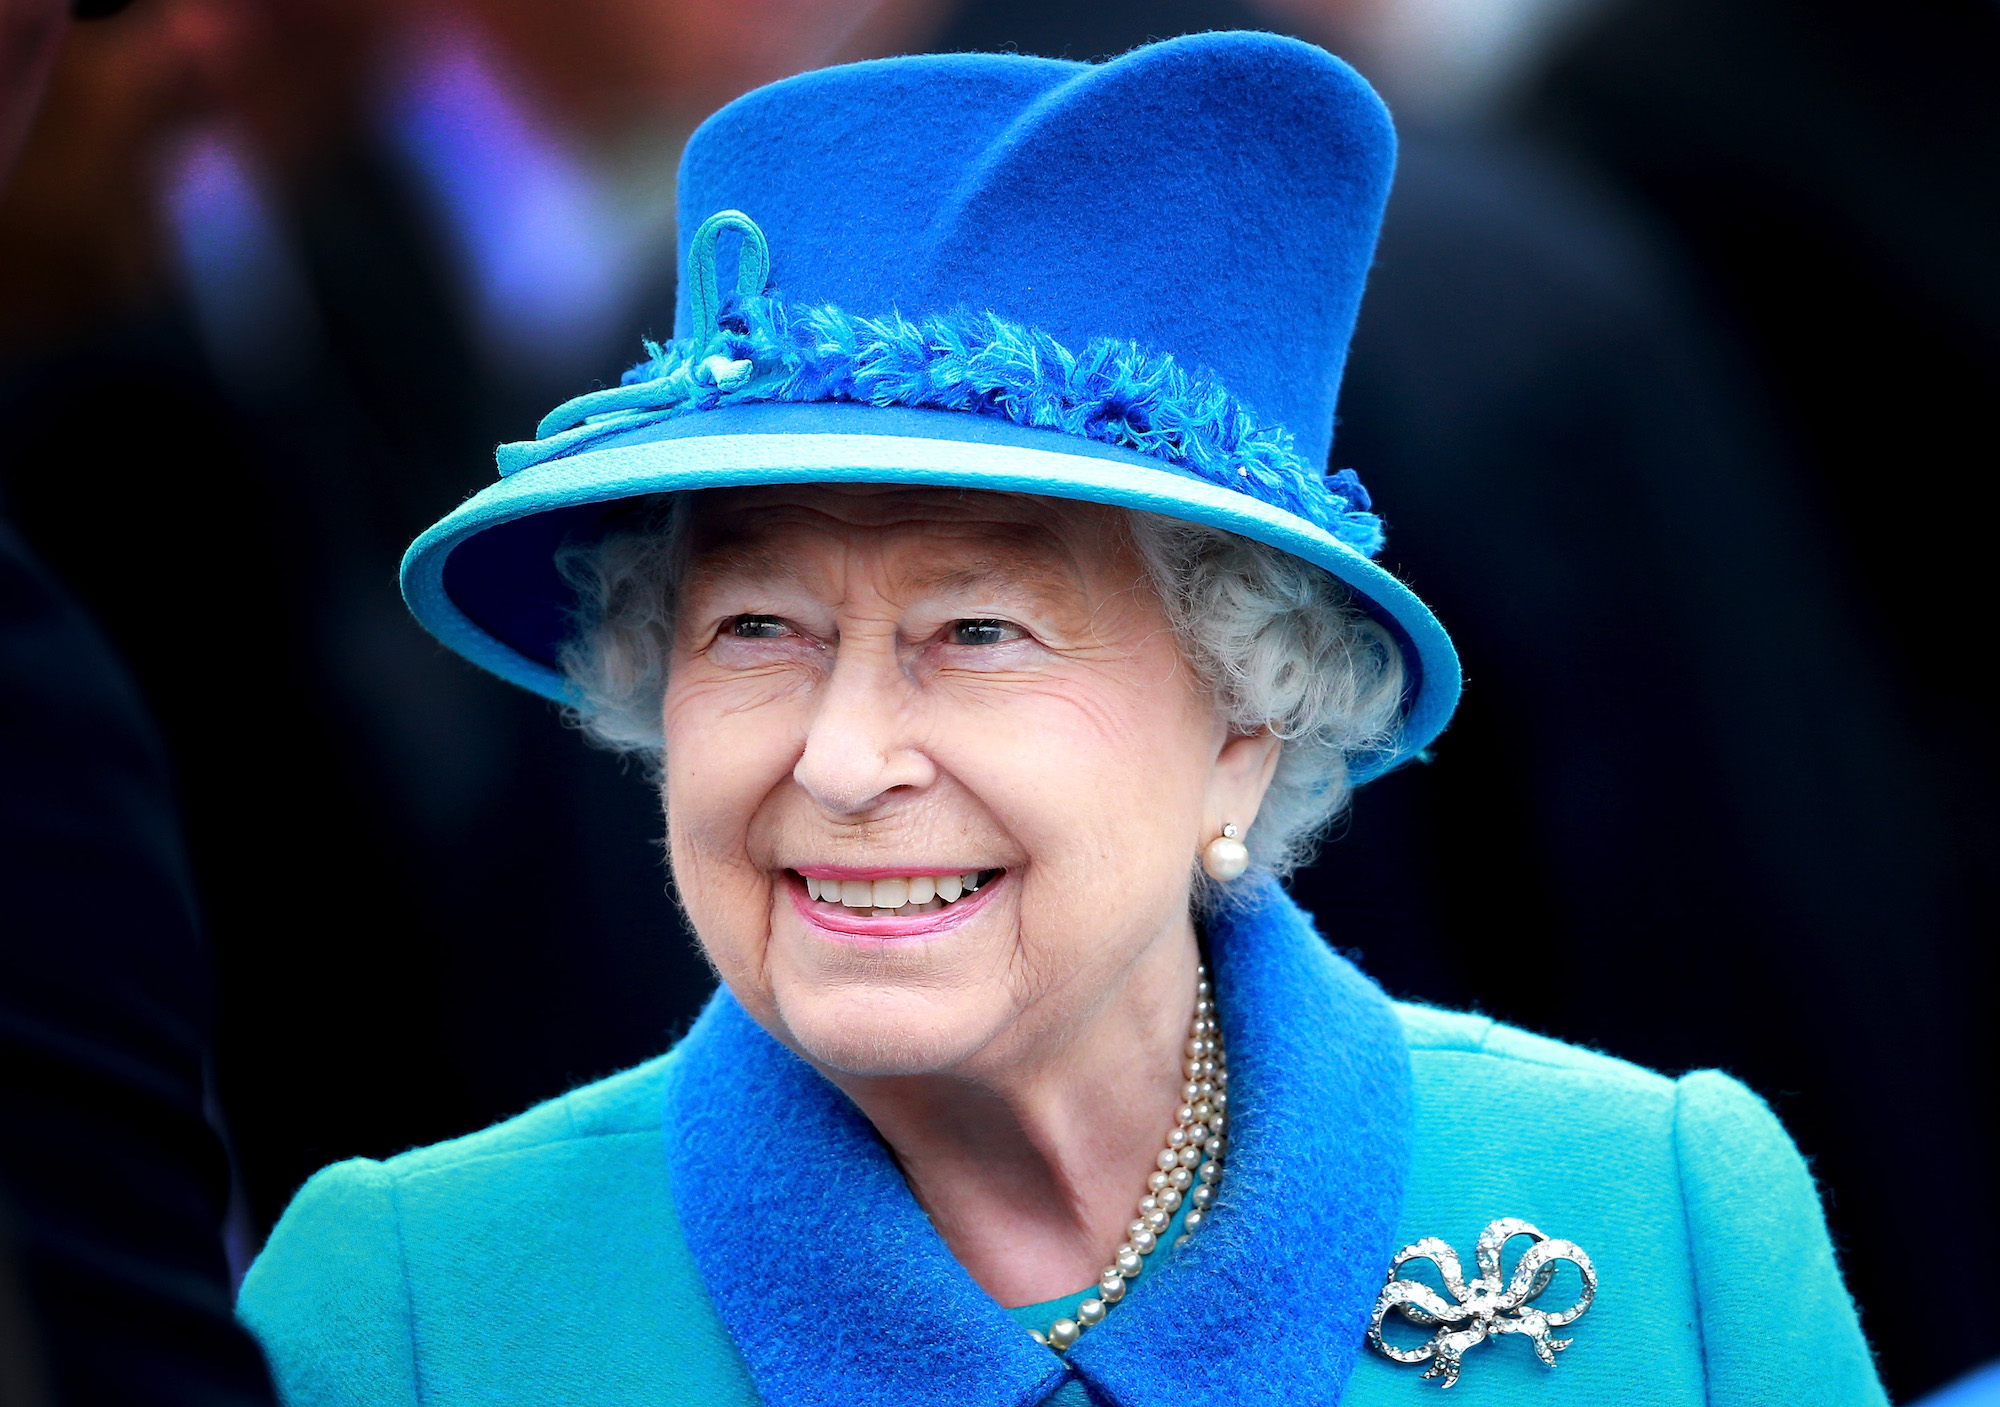 The British monarch queen Elizabeth the second, has felicitated with Nigeria as the country marks its 60th anniversary.